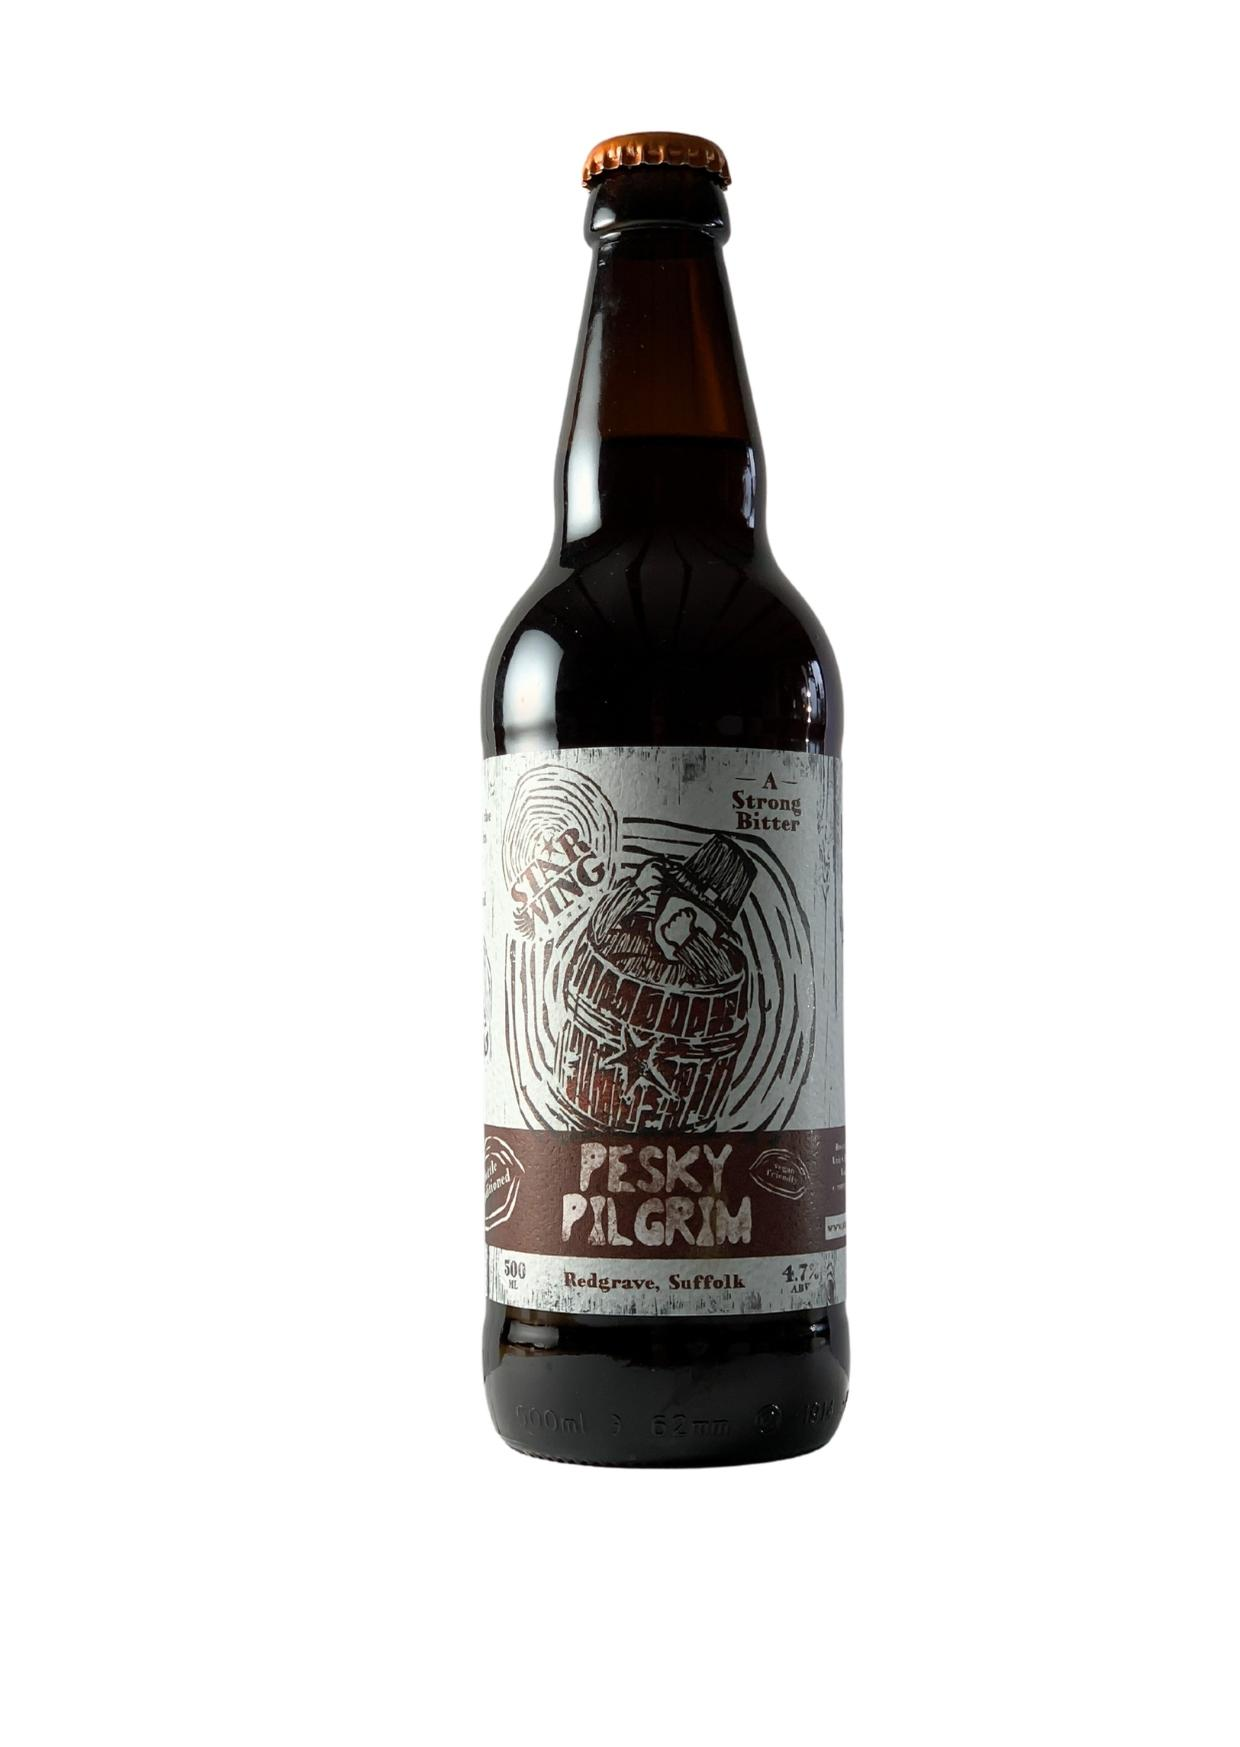 A 500ml bottle of delicious Star Wing Brewery's Pesky Pilgrim, 4.7% Strong Bitter